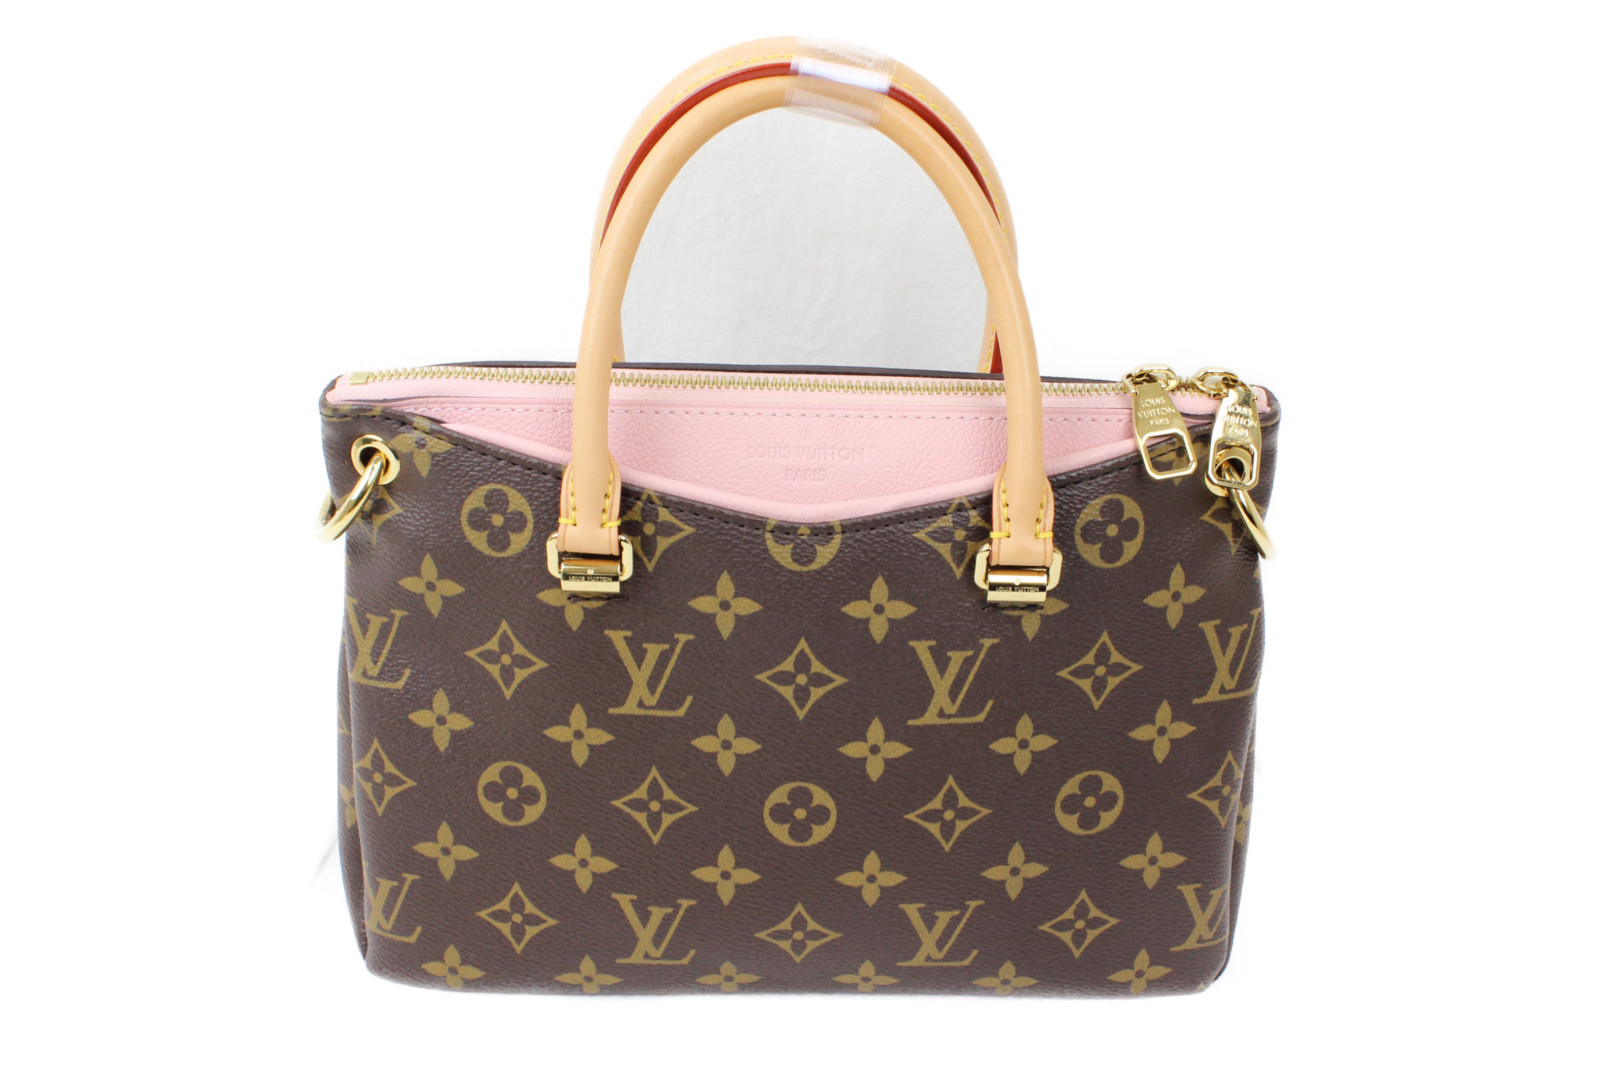 LOUIS VUITTON ルイヴィトンパラスBB M404642WAYバッグ モノグラムピンク カワイイプレゼント包装可 【中古】